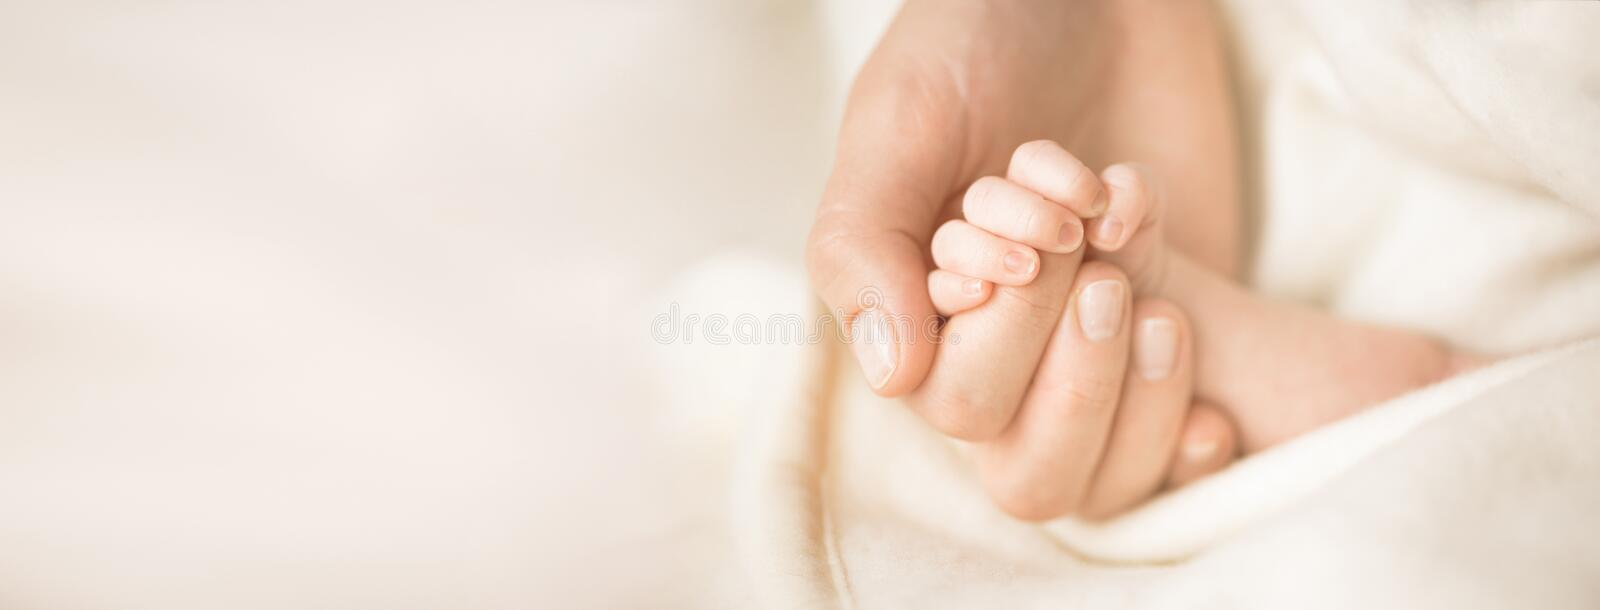 Female hand holding her newborn baby`s hand. Mom with her child. Maternity, family, birth concept. Copy space for your stock photography